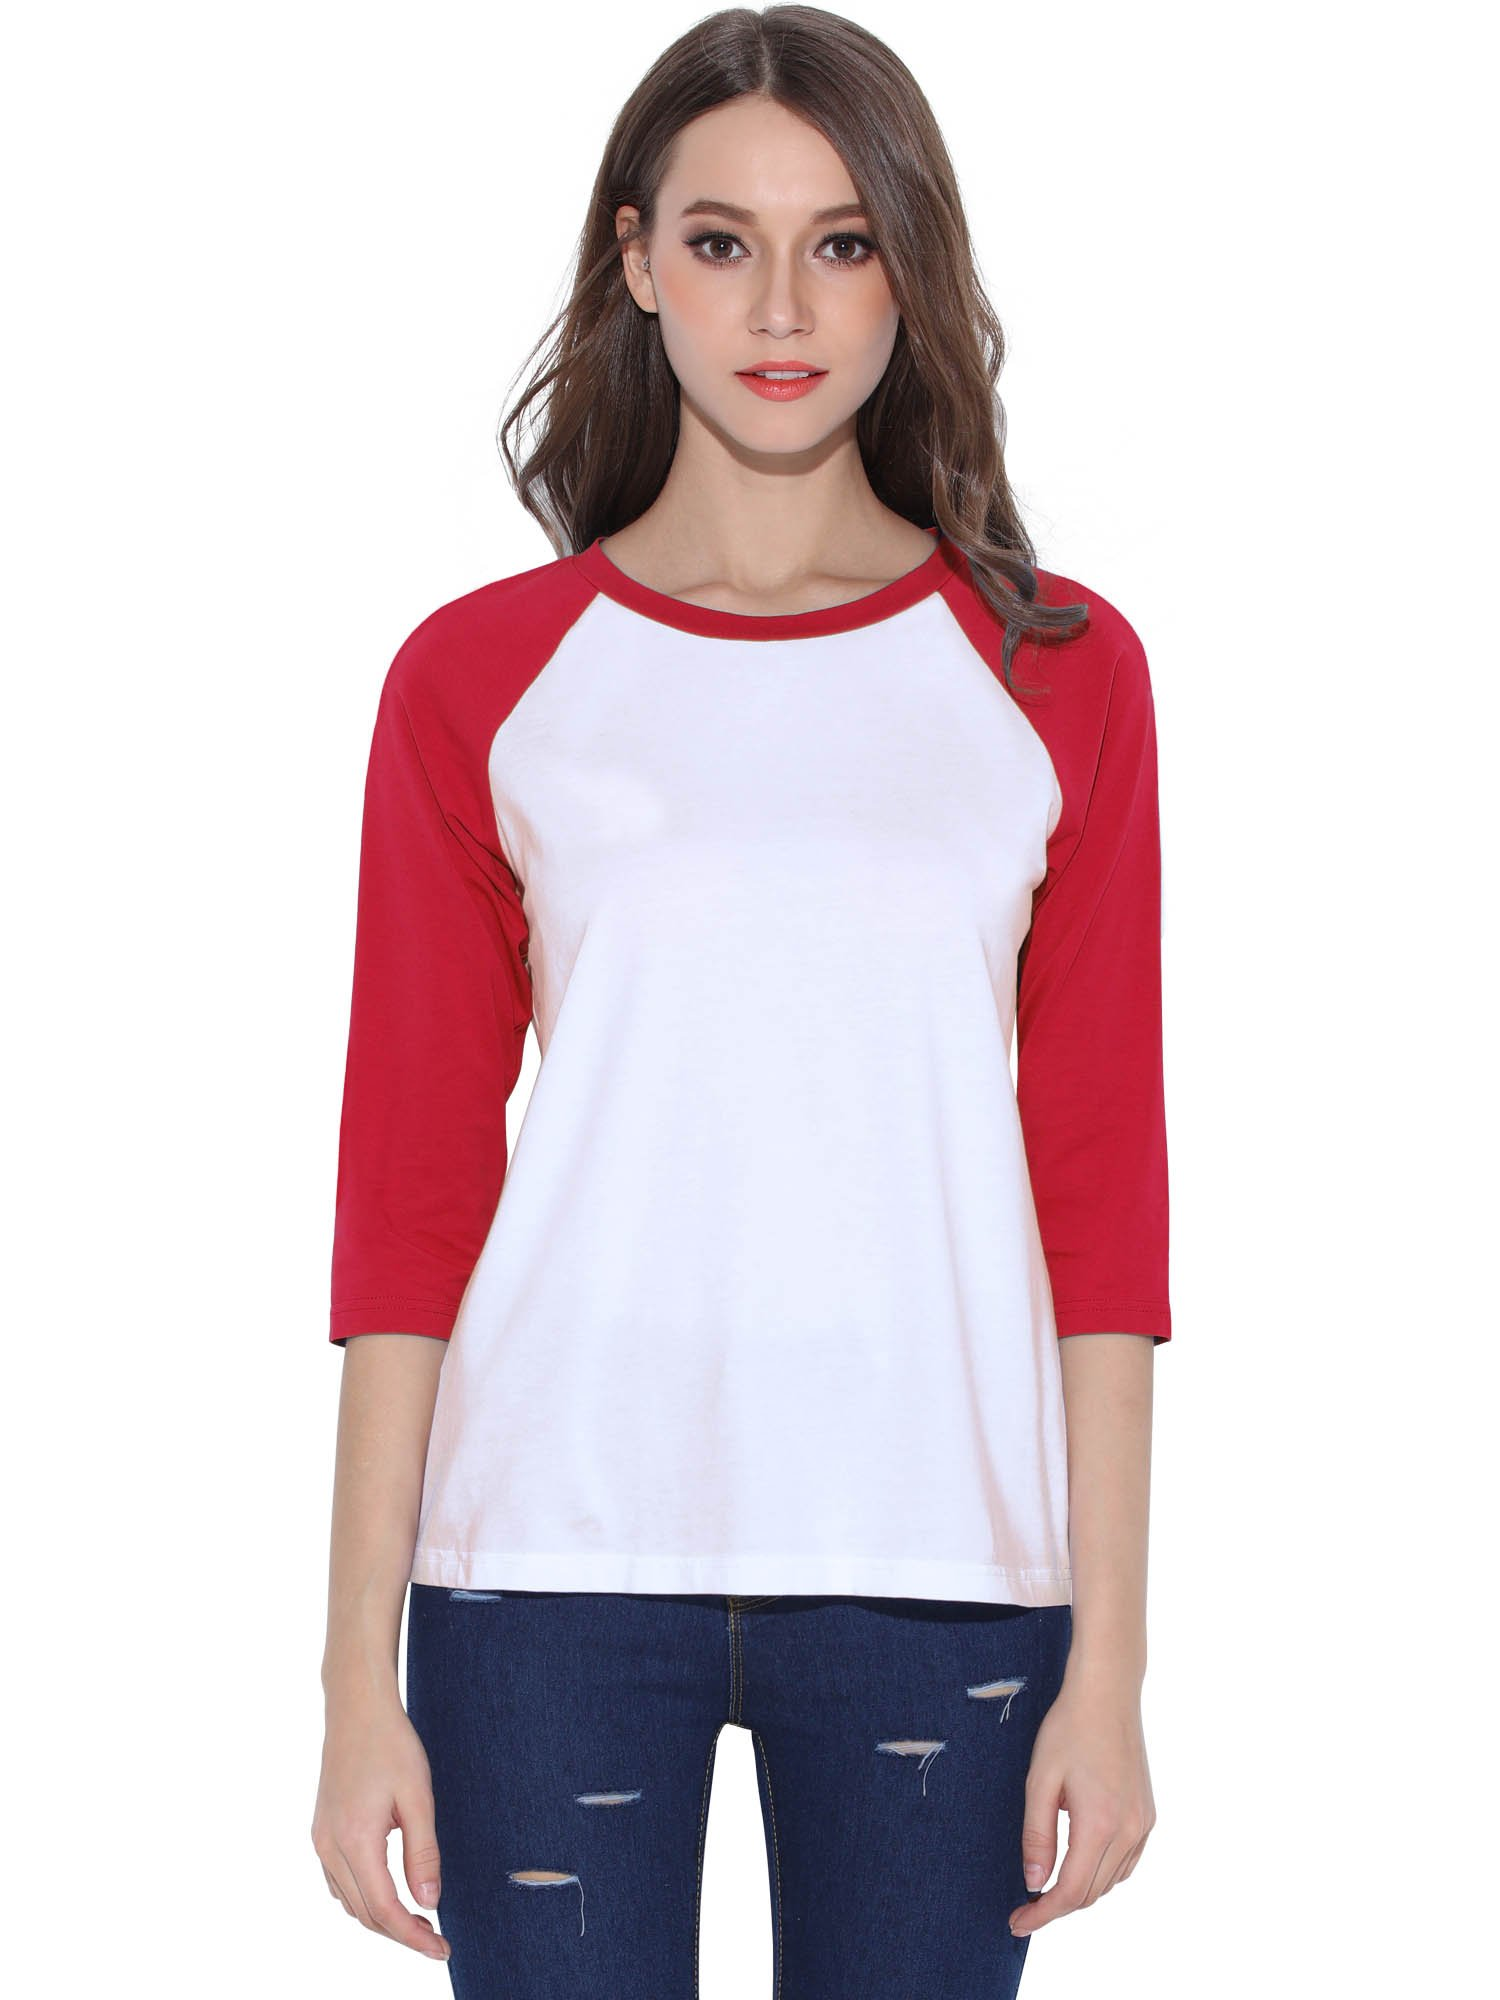 HUHOT Cotton Crew Neck 3/4 Sleeve Jersey Shirt Baseball Tee Raglan T-Shirts Medium Red